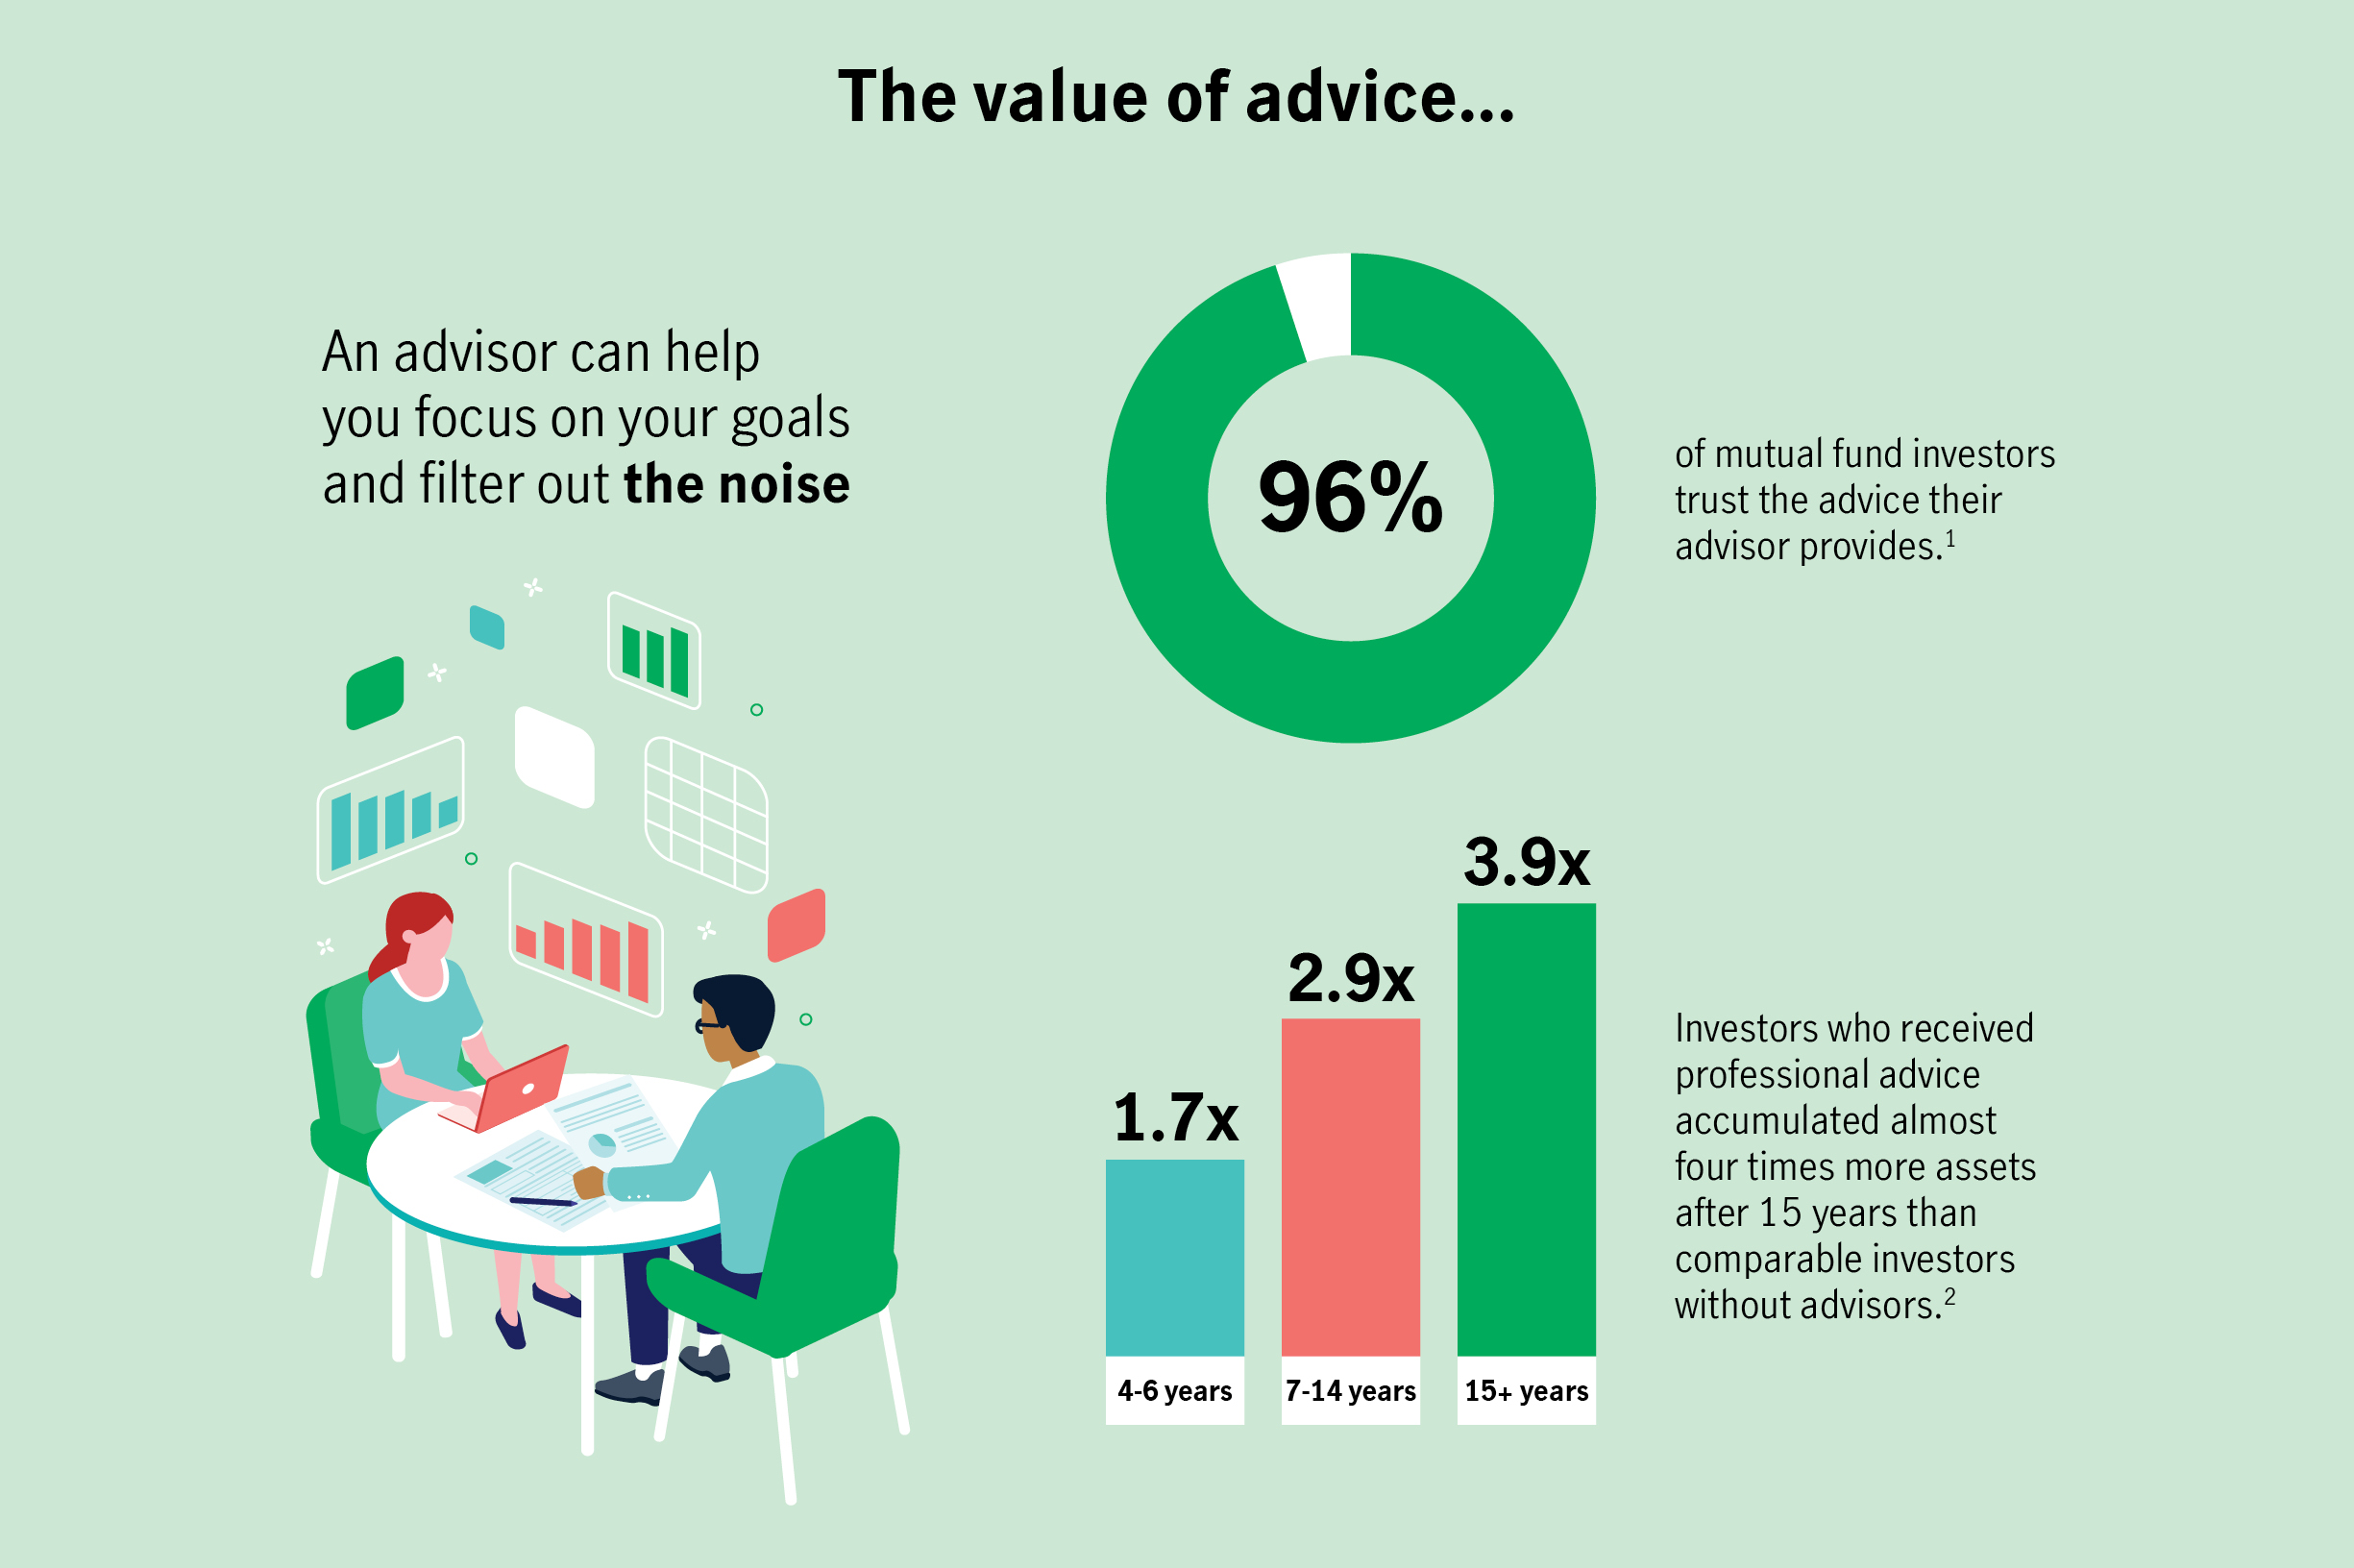 The value of advice...An advisor can help you focus on your goals and filter out the noise. 96% of mutual fund investors trust the advice their advisor provides. Investors who received professional advice accumulated almost four times more assets after 15 years than comparable investors without advisors.